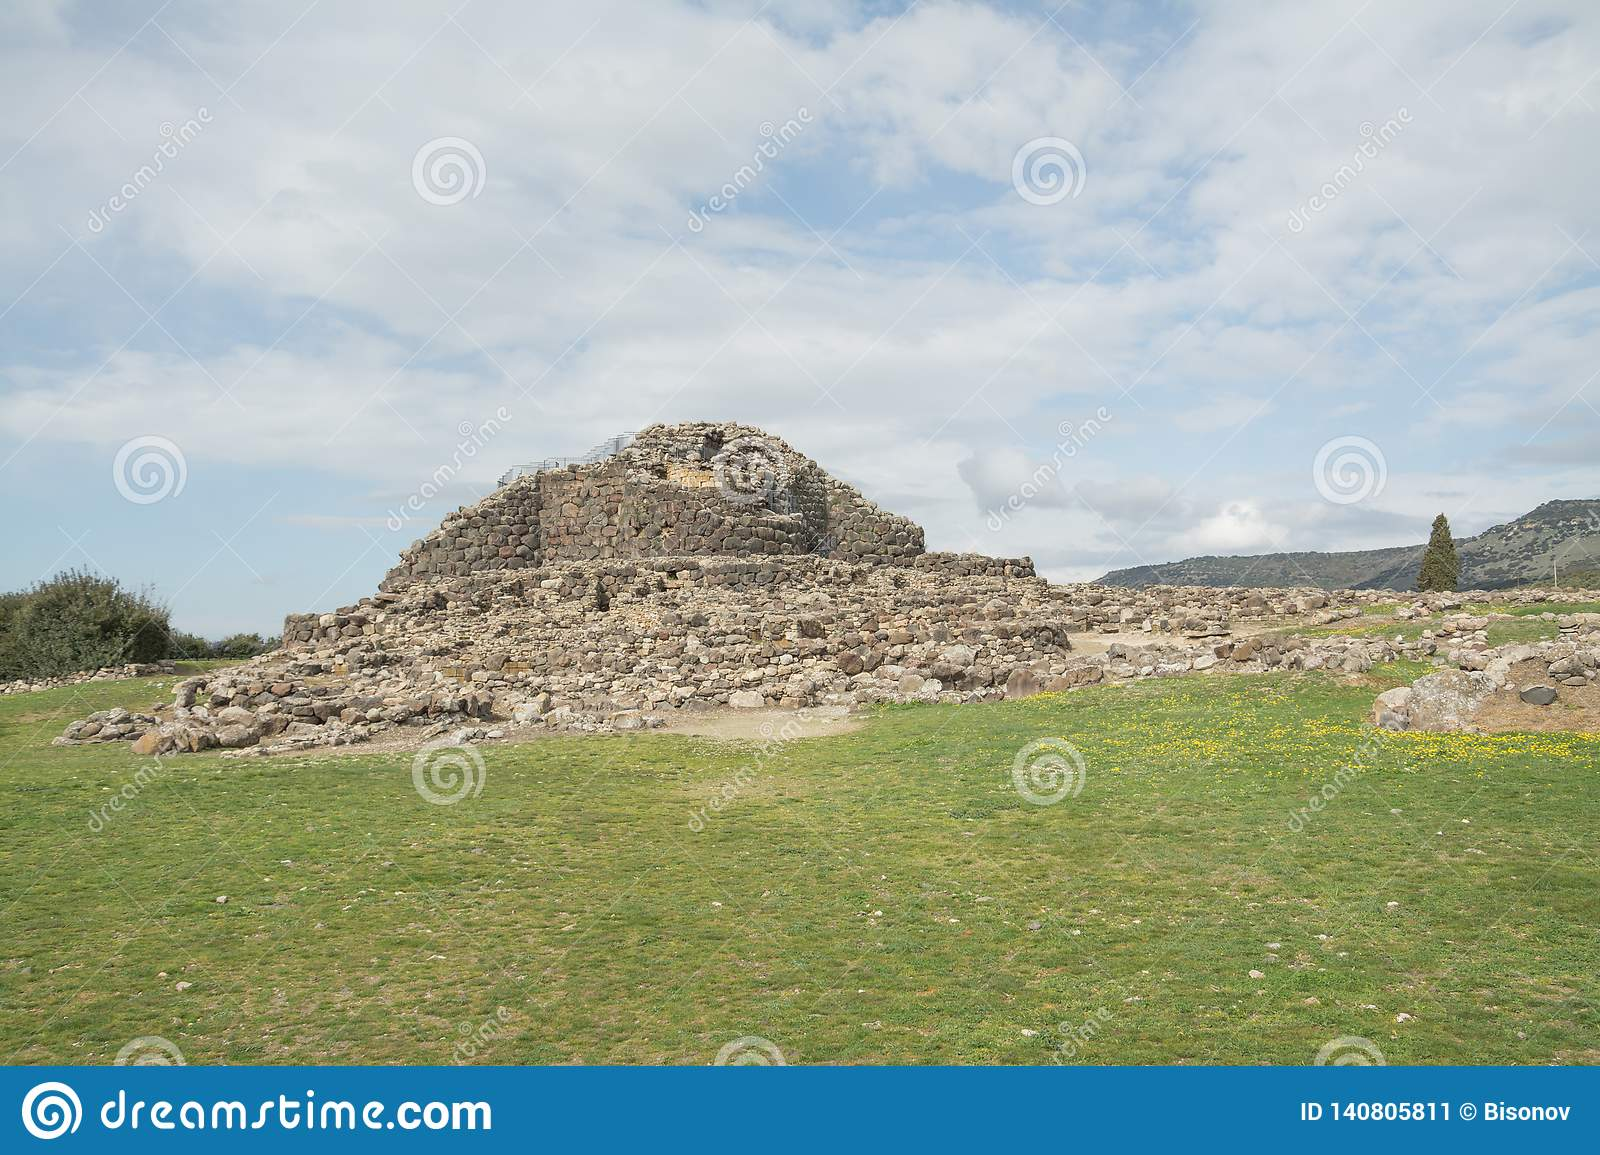 BARUMINI, Sardinia, Italy - February 23, 2019: The ruins of Su Nuraxi near Barumini in Sardinia